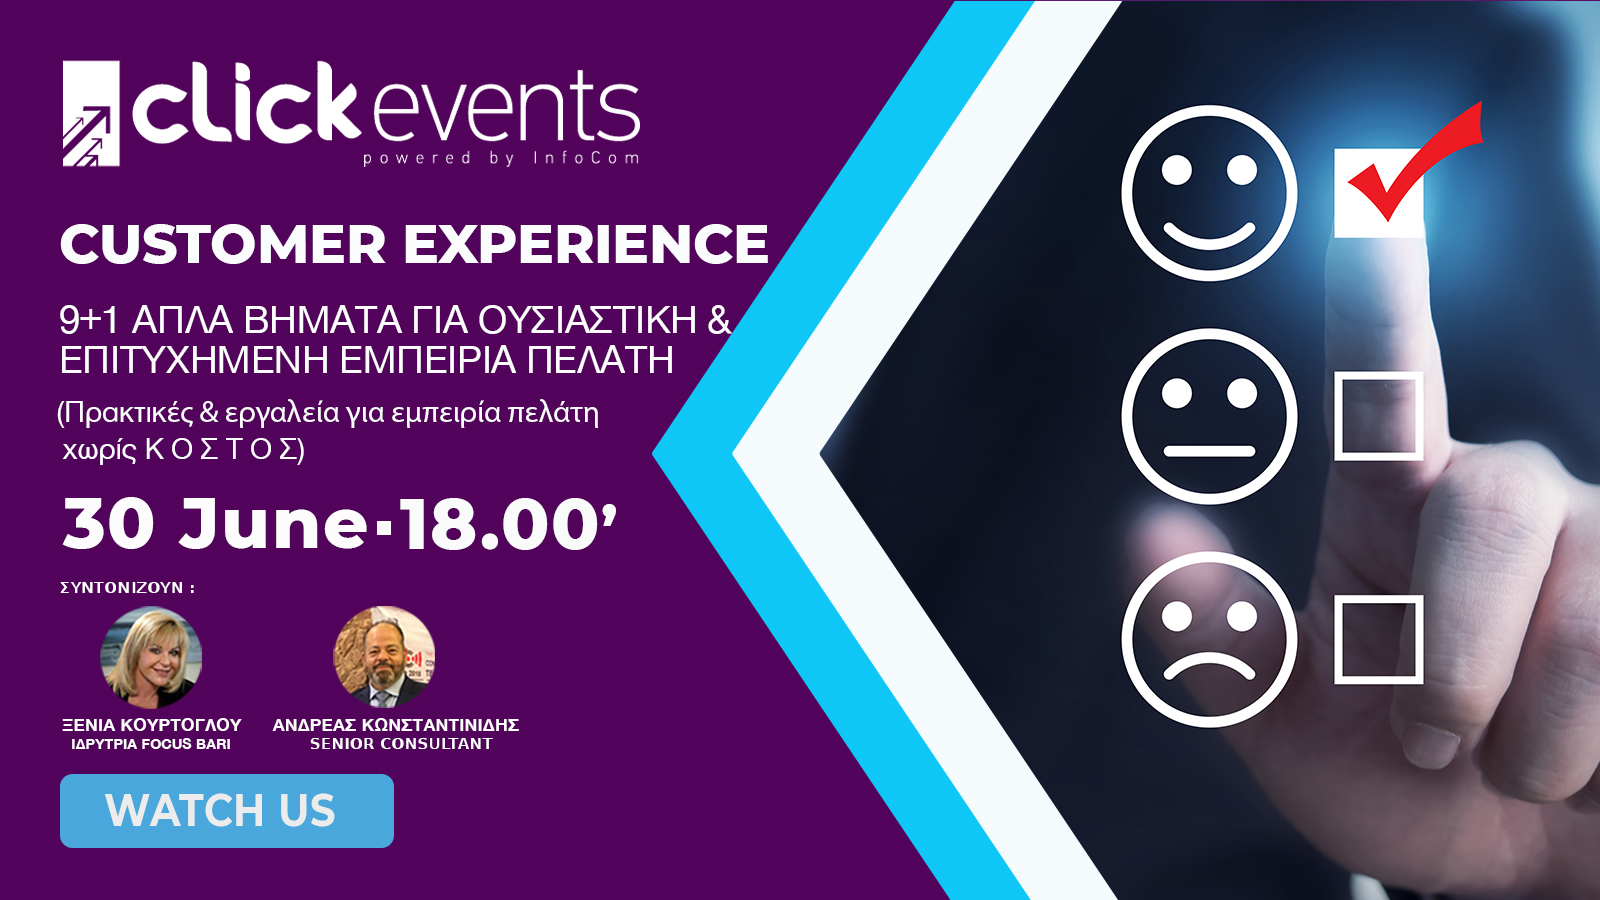 Customer experience for clickevents 1600x900